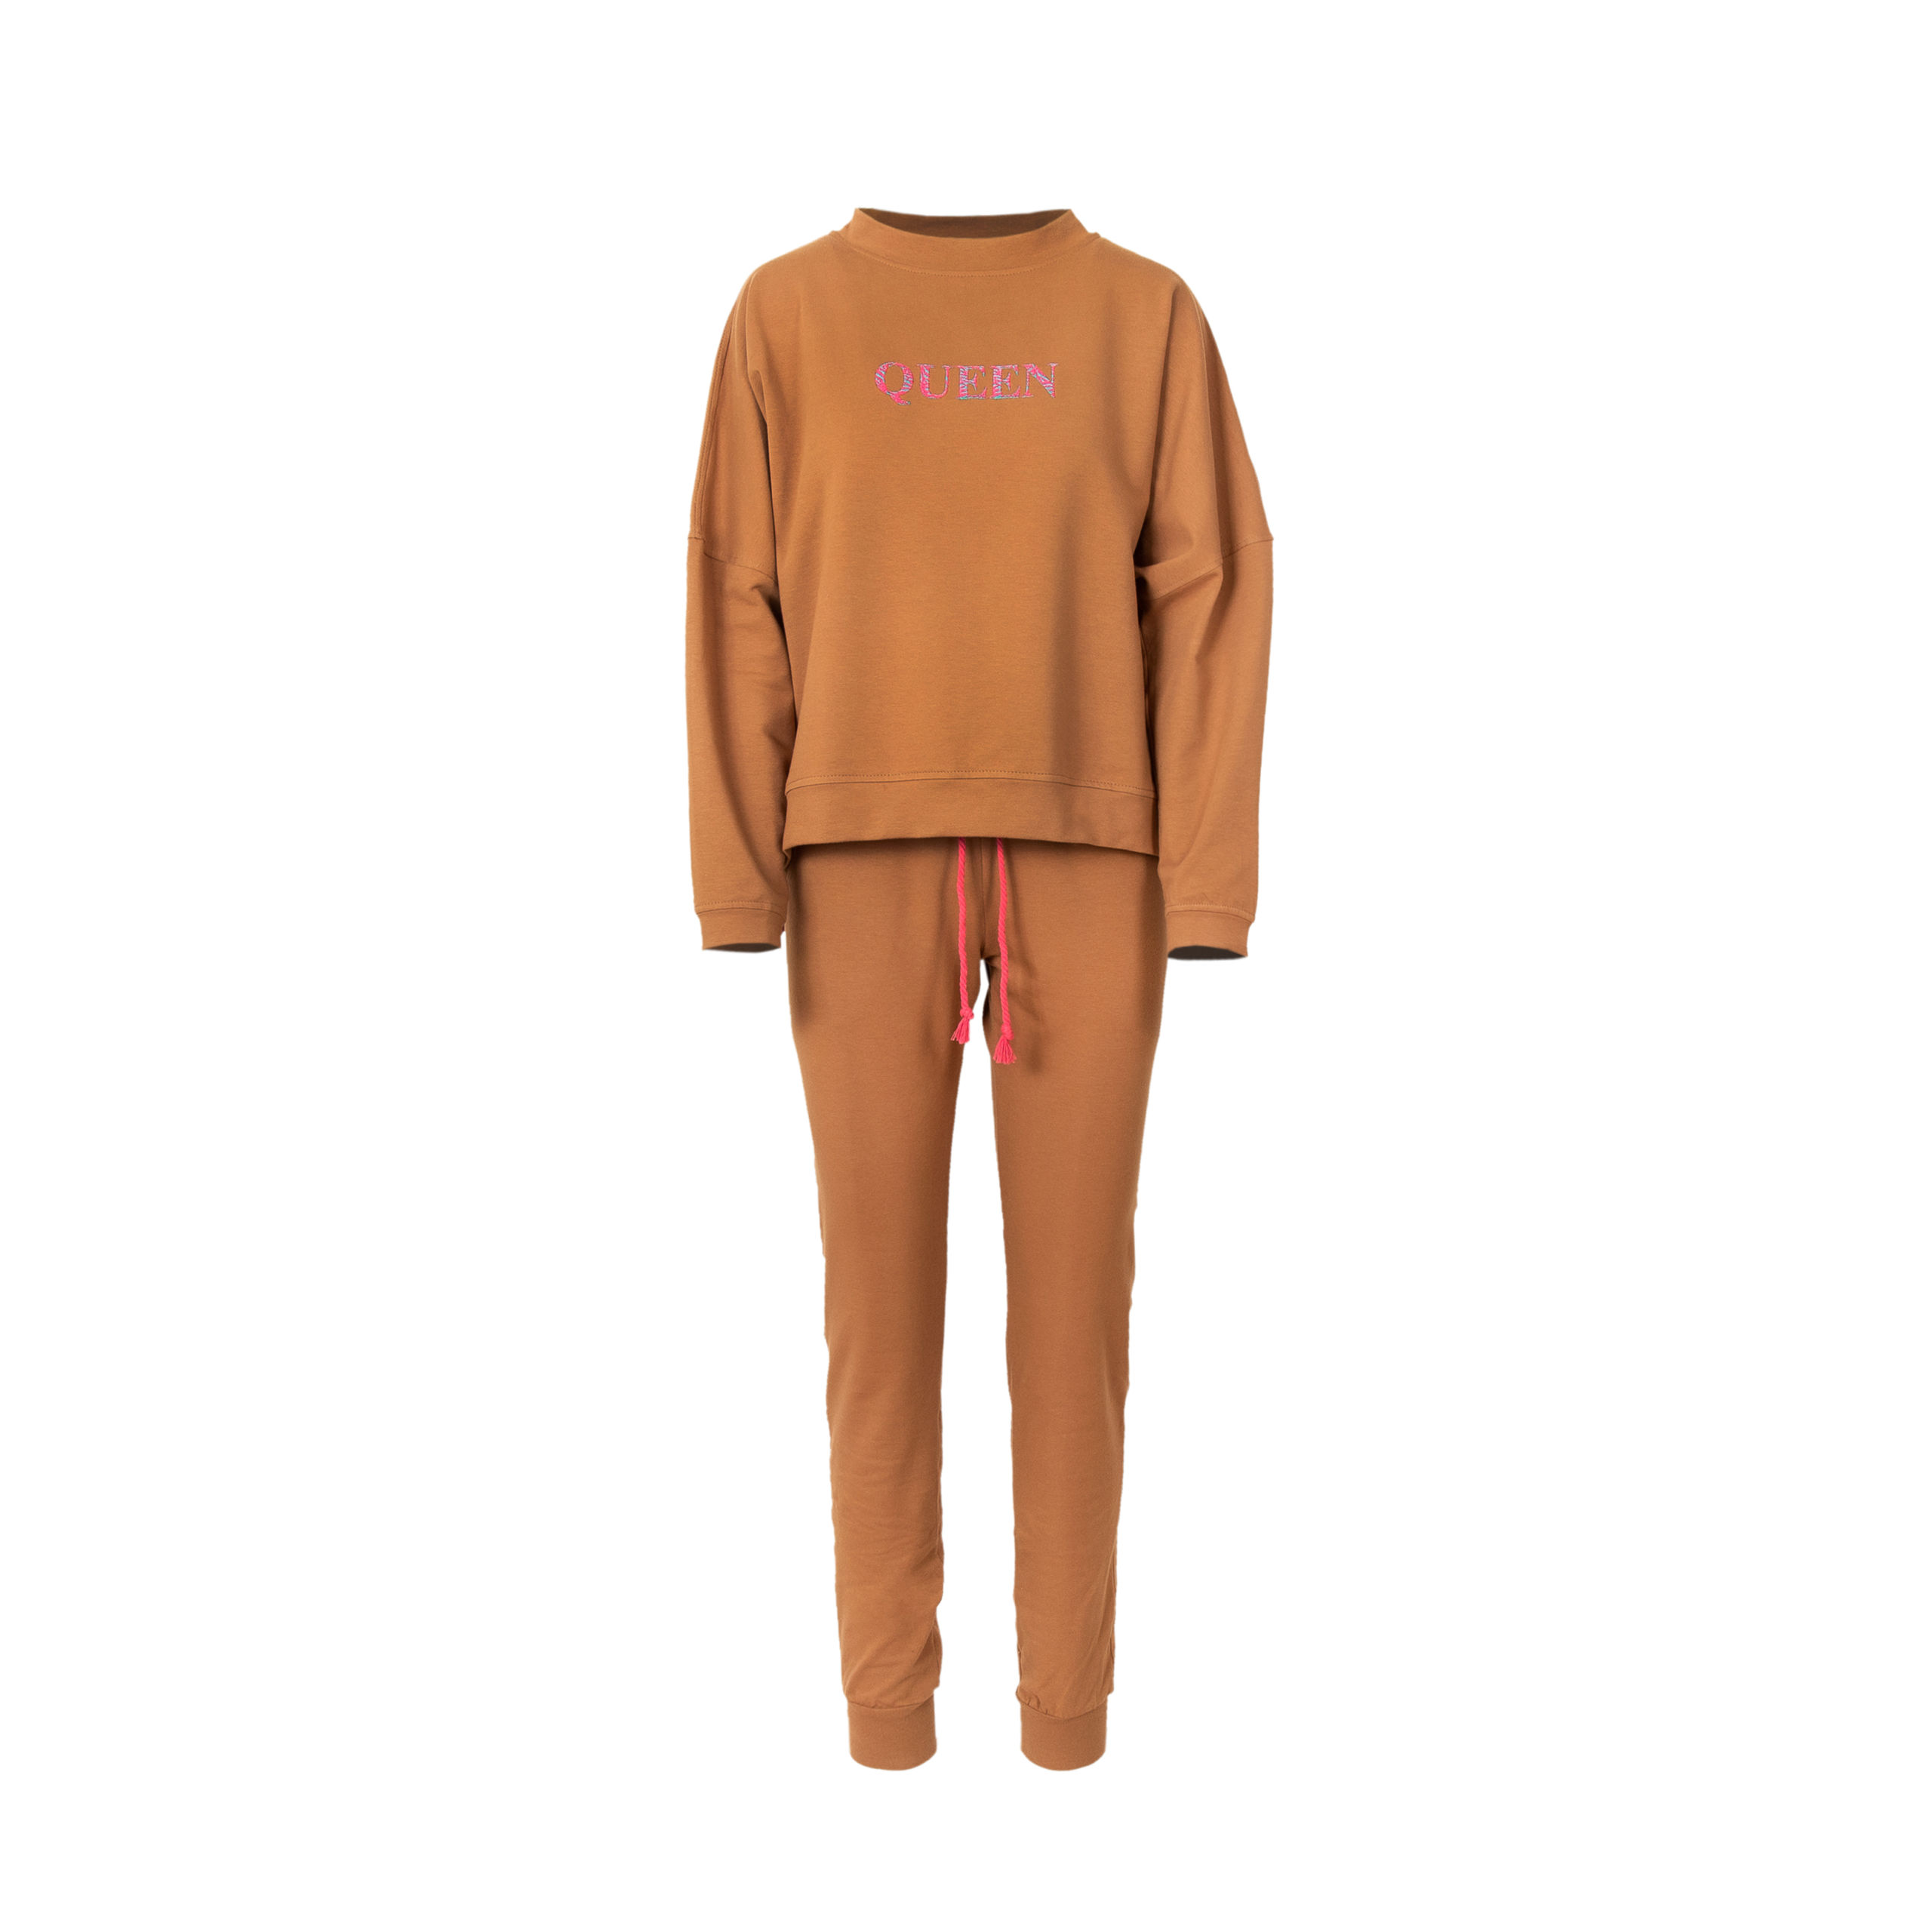 soft , embroidered , tracksuit, Camel, Cosel , Poland